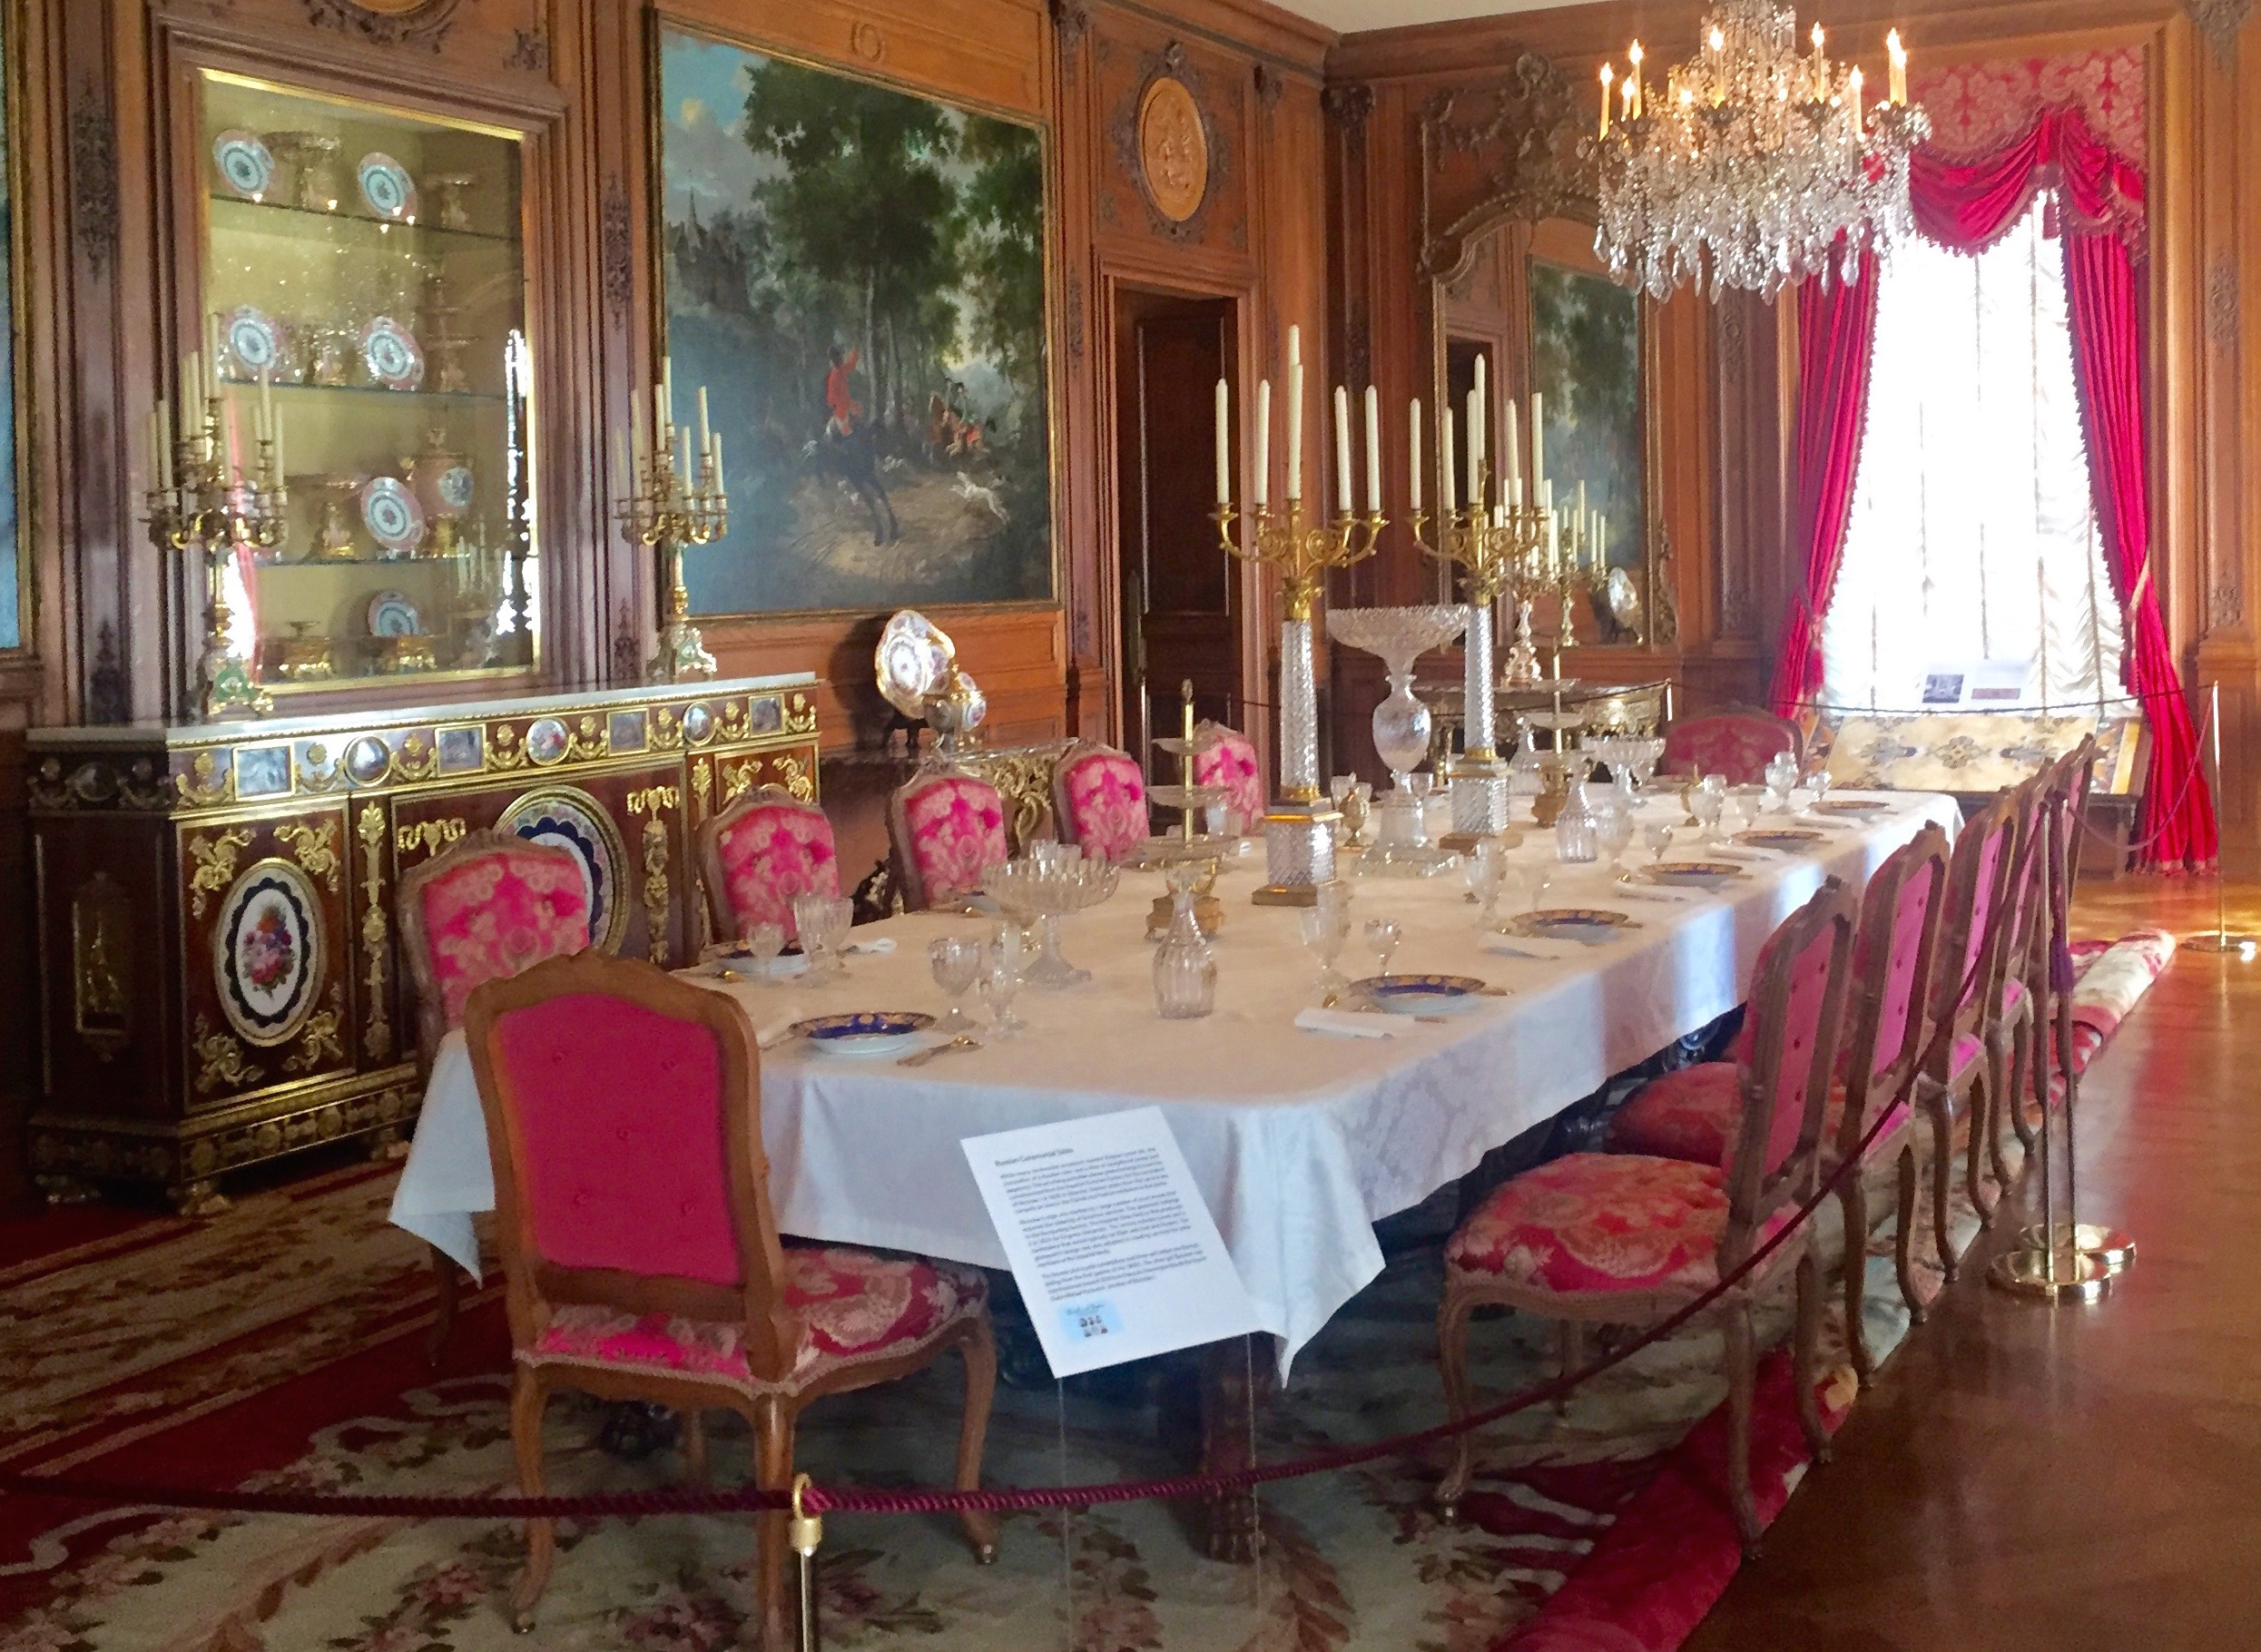 Post fed her lucky guests off Russian imperial porcelain plates. The dining room is currently set with the porcelain service created to honor the coronation of Tsar Nicholas I in 1826. I learned that last week.